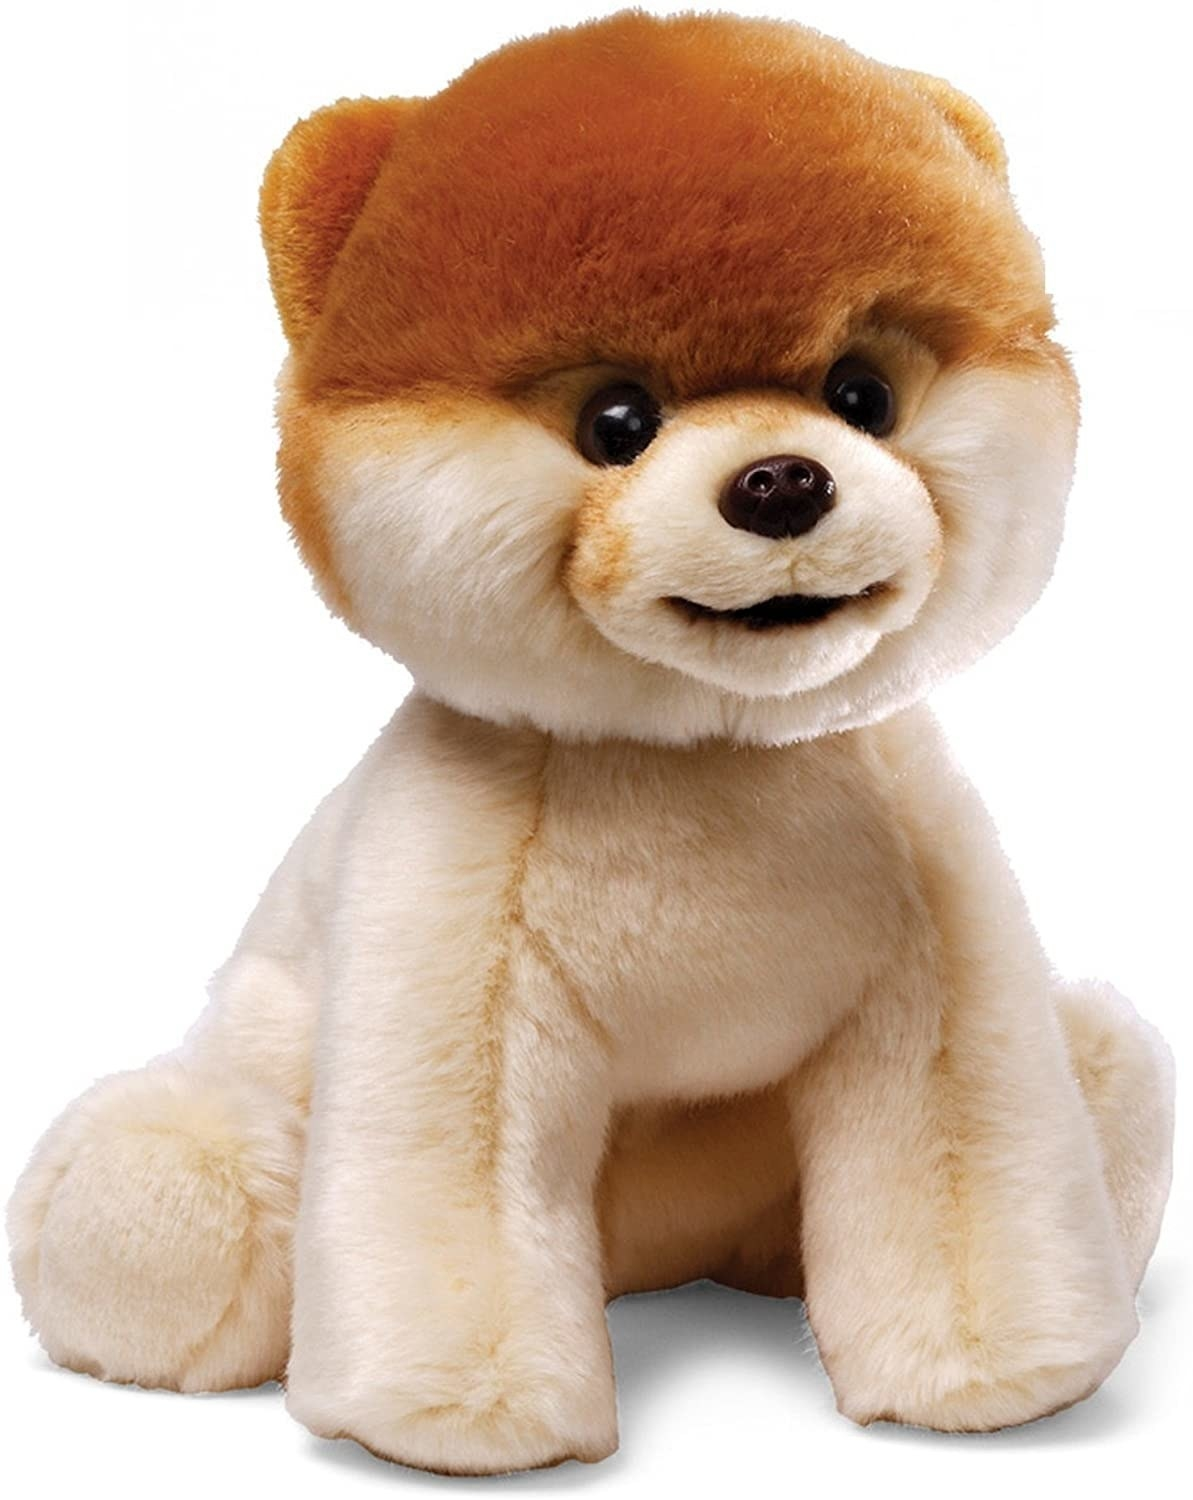 The plush Pomeranian